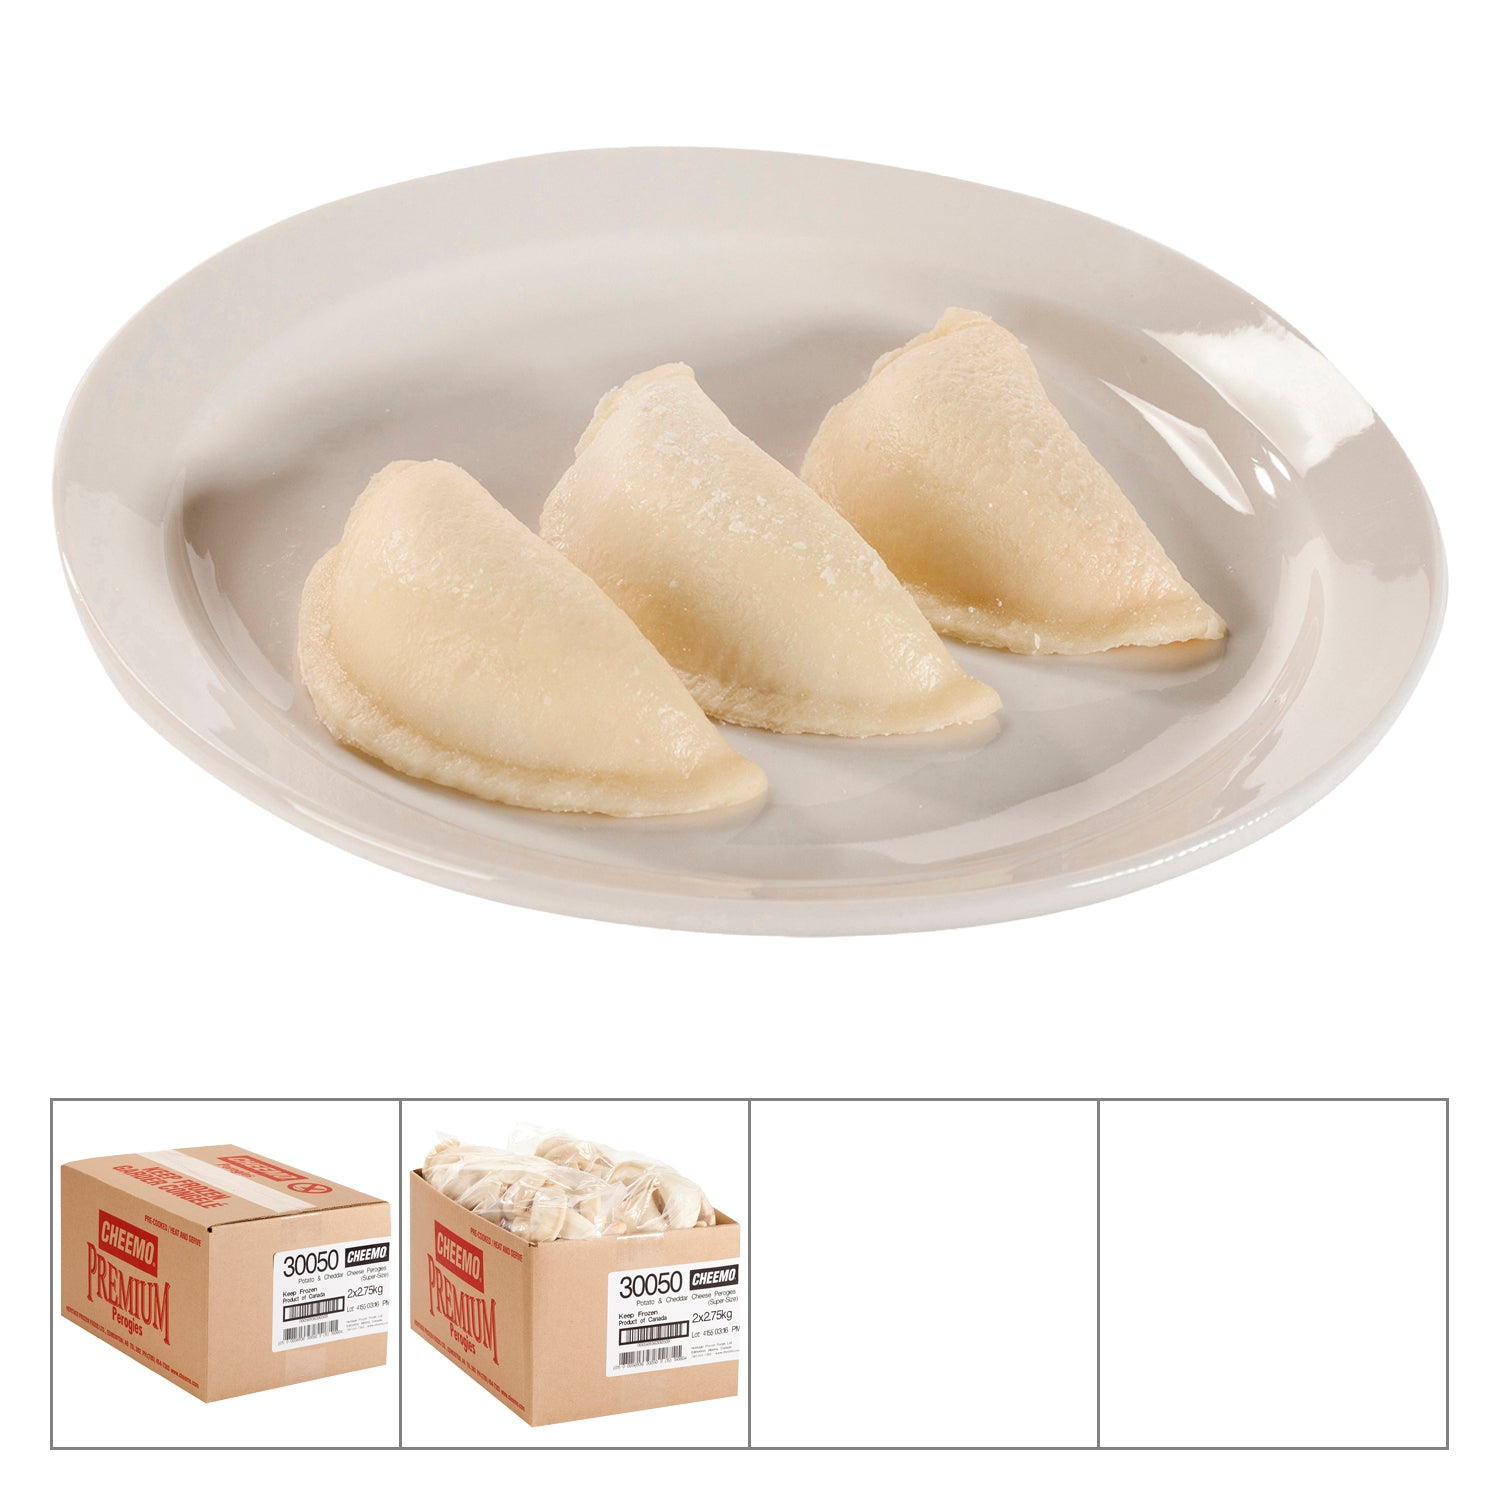 Cheemo Frozen Potato and Cheese Perogies 5.5 kg - 1 Pack [$3.27/kg]